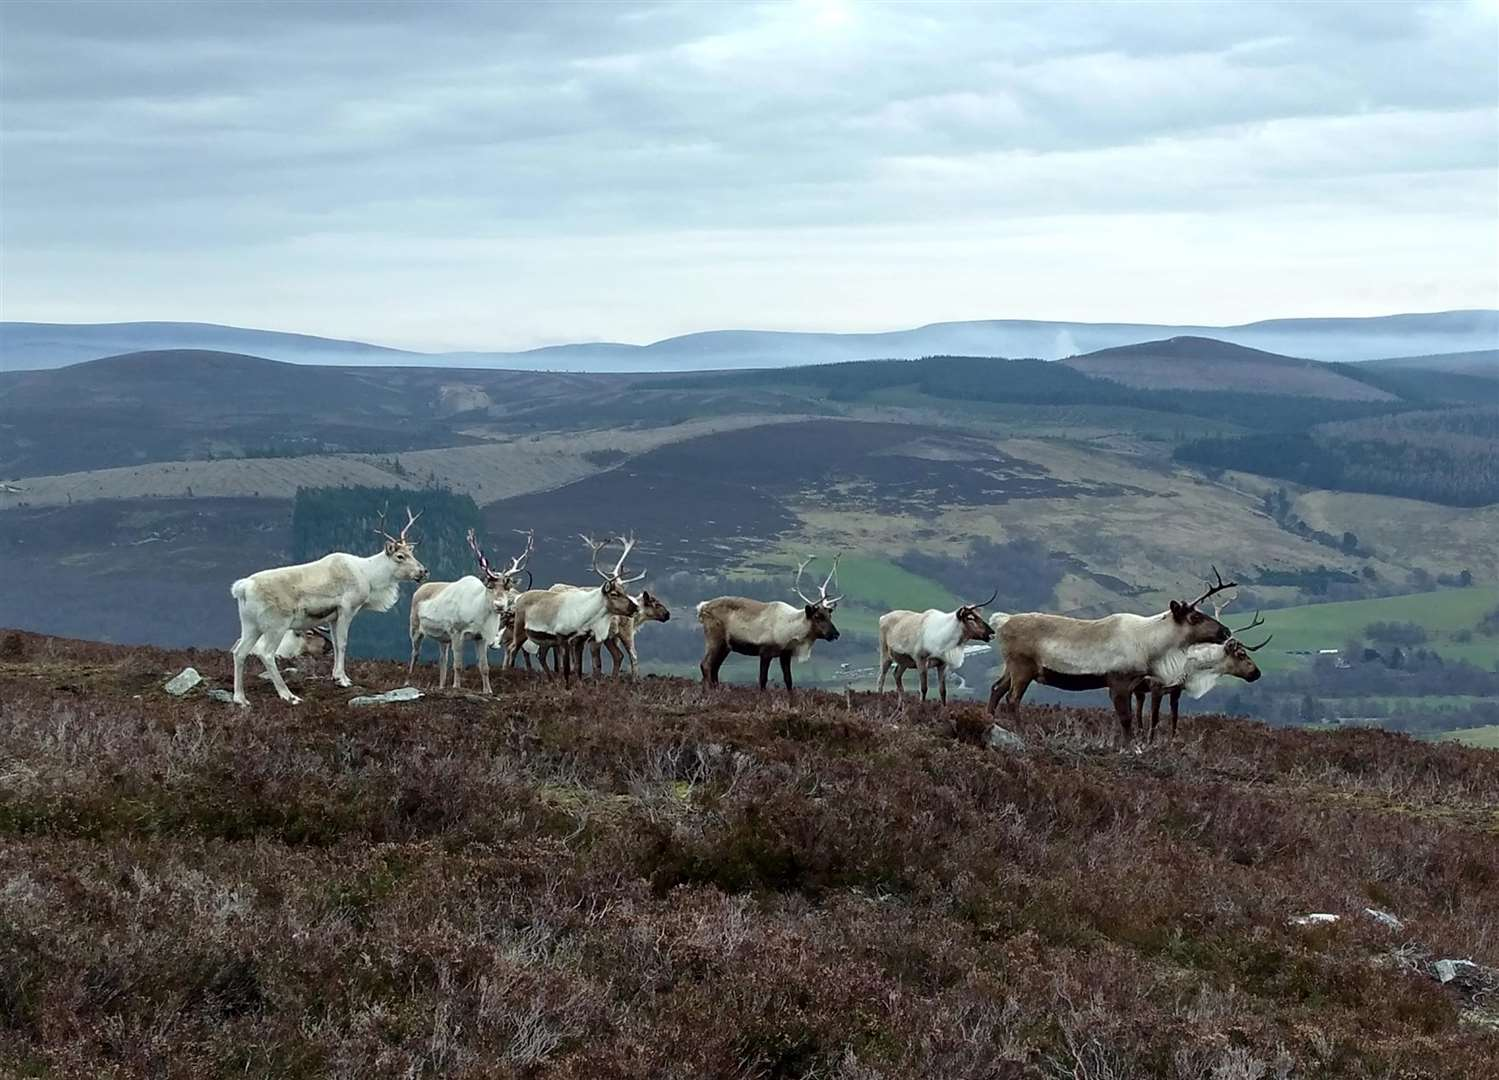 The Cairngorm reindeer herd roaming the hills.